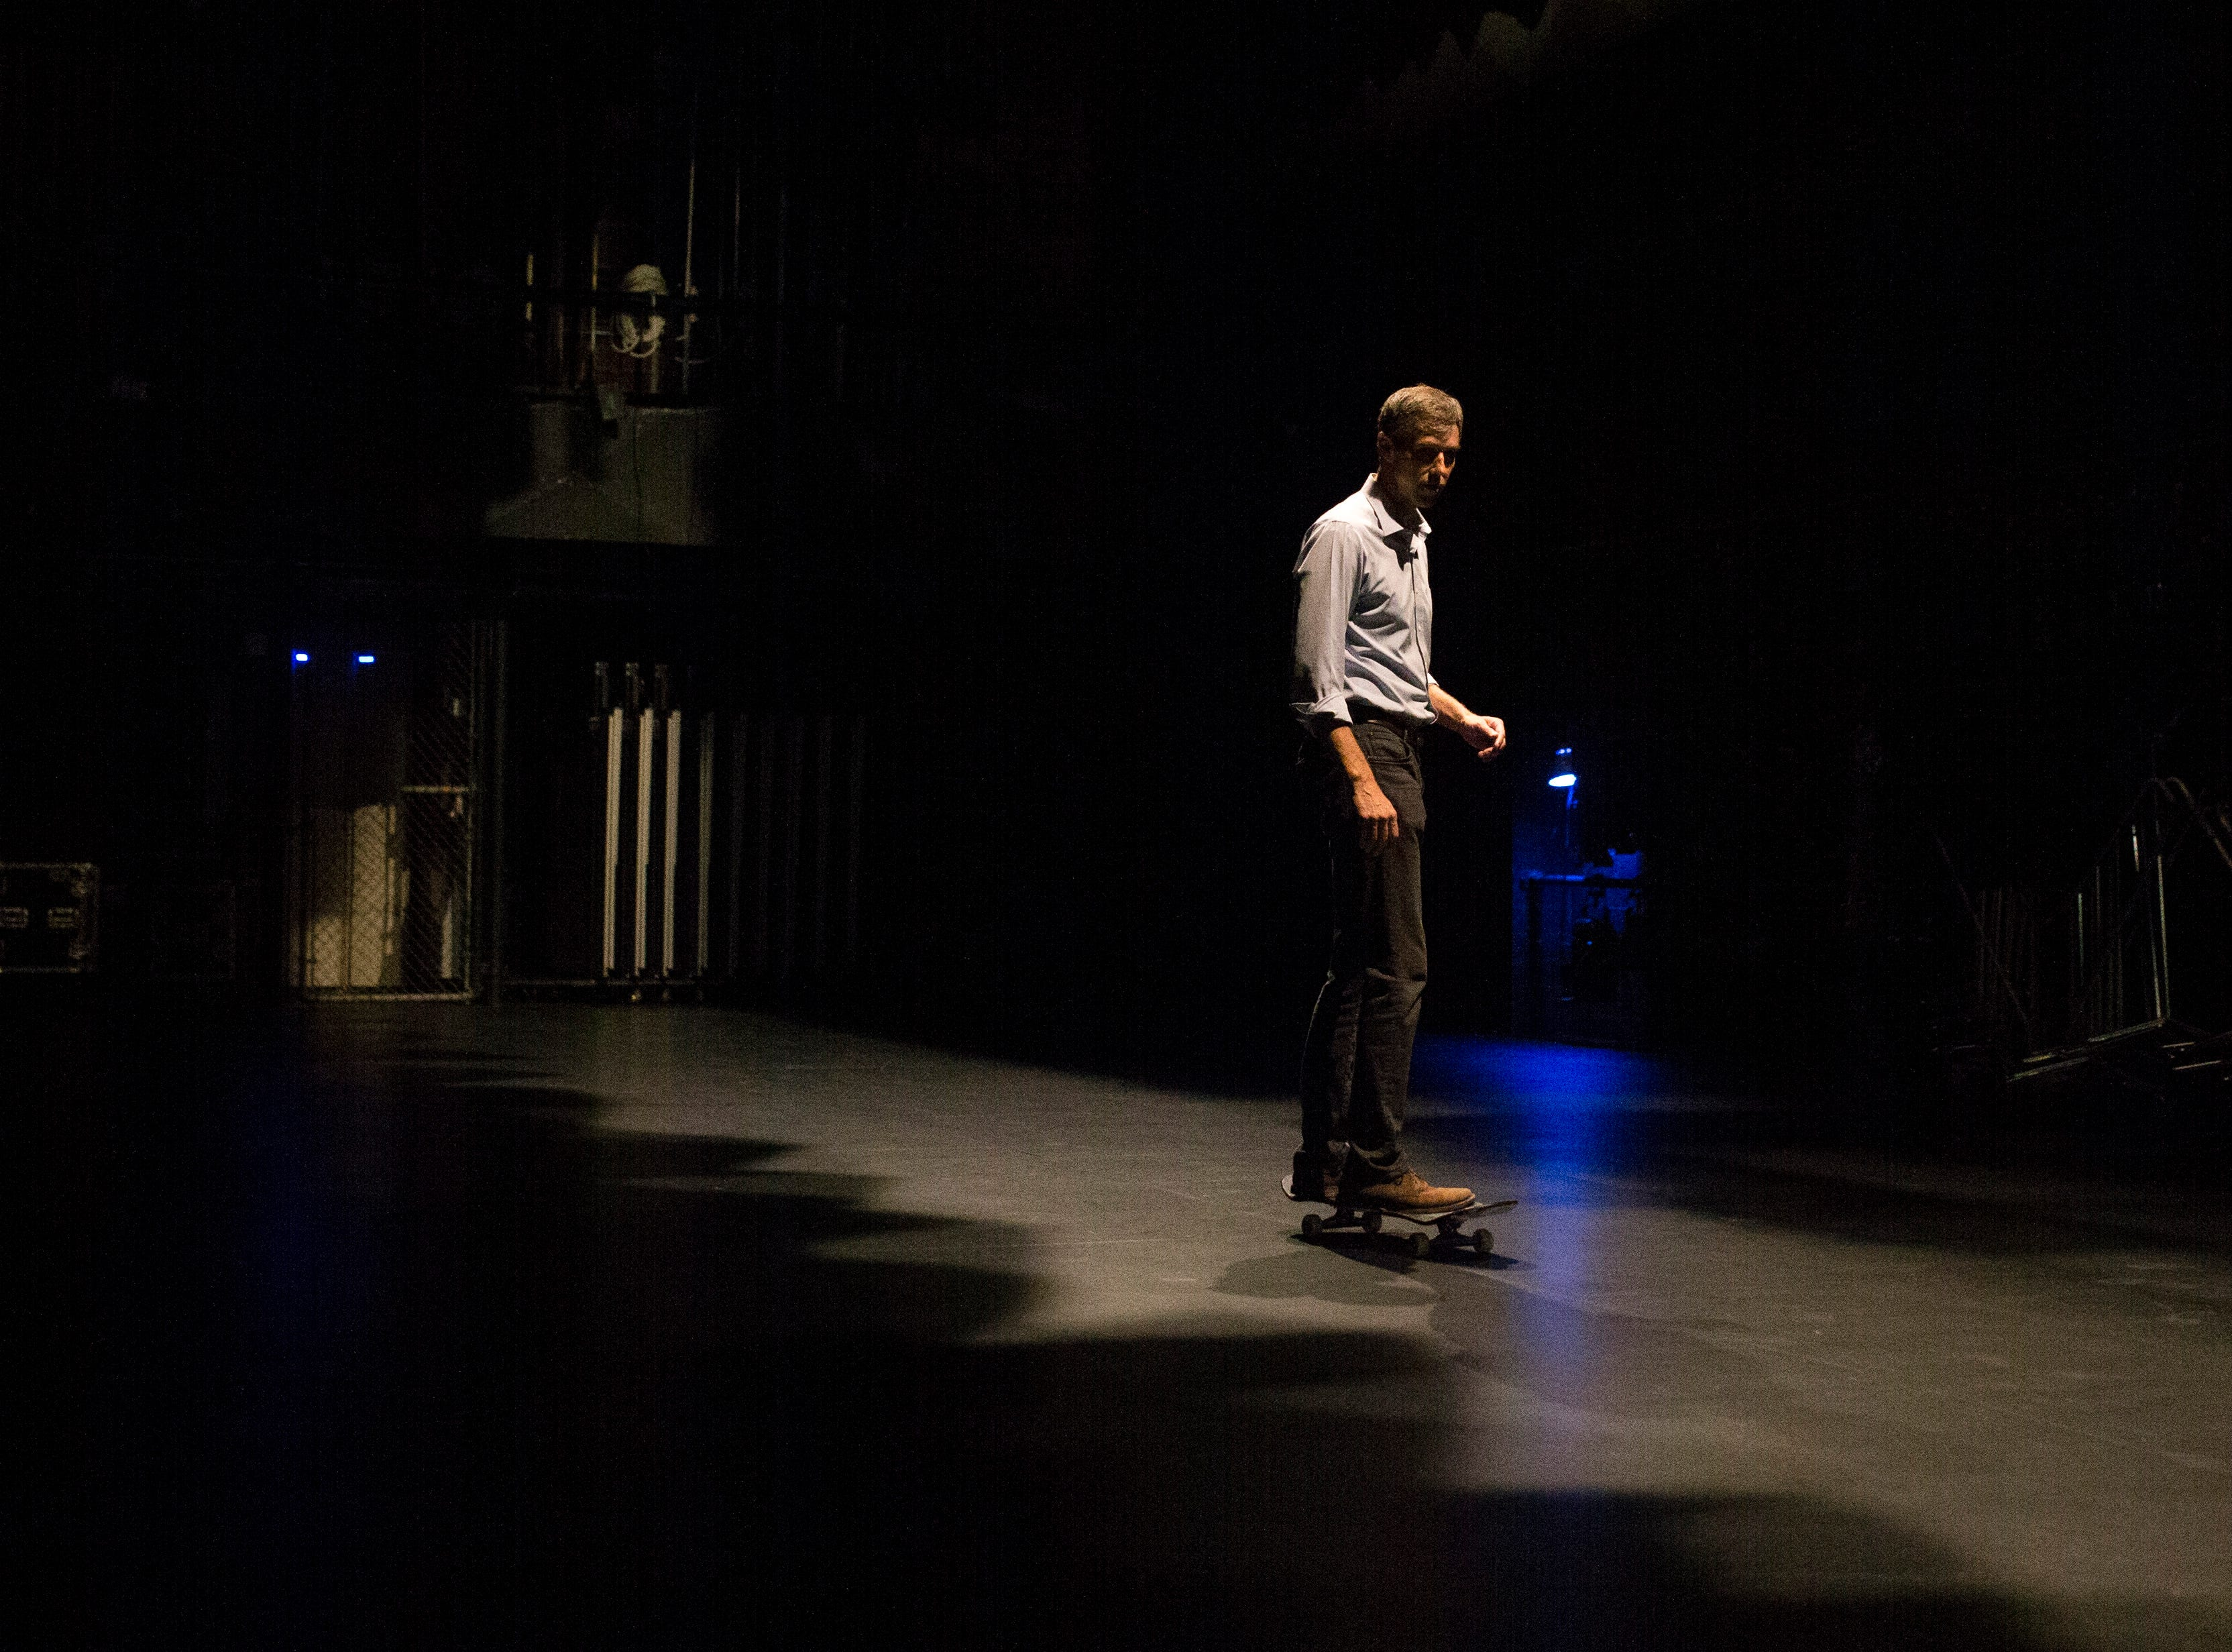 U.S. Rep. Beto O'Rourke skates on a skateboard behind stage before speaking at campaign event on Saturday, Oct. 13, 2018 at Del Mar College in Corpus Christi.